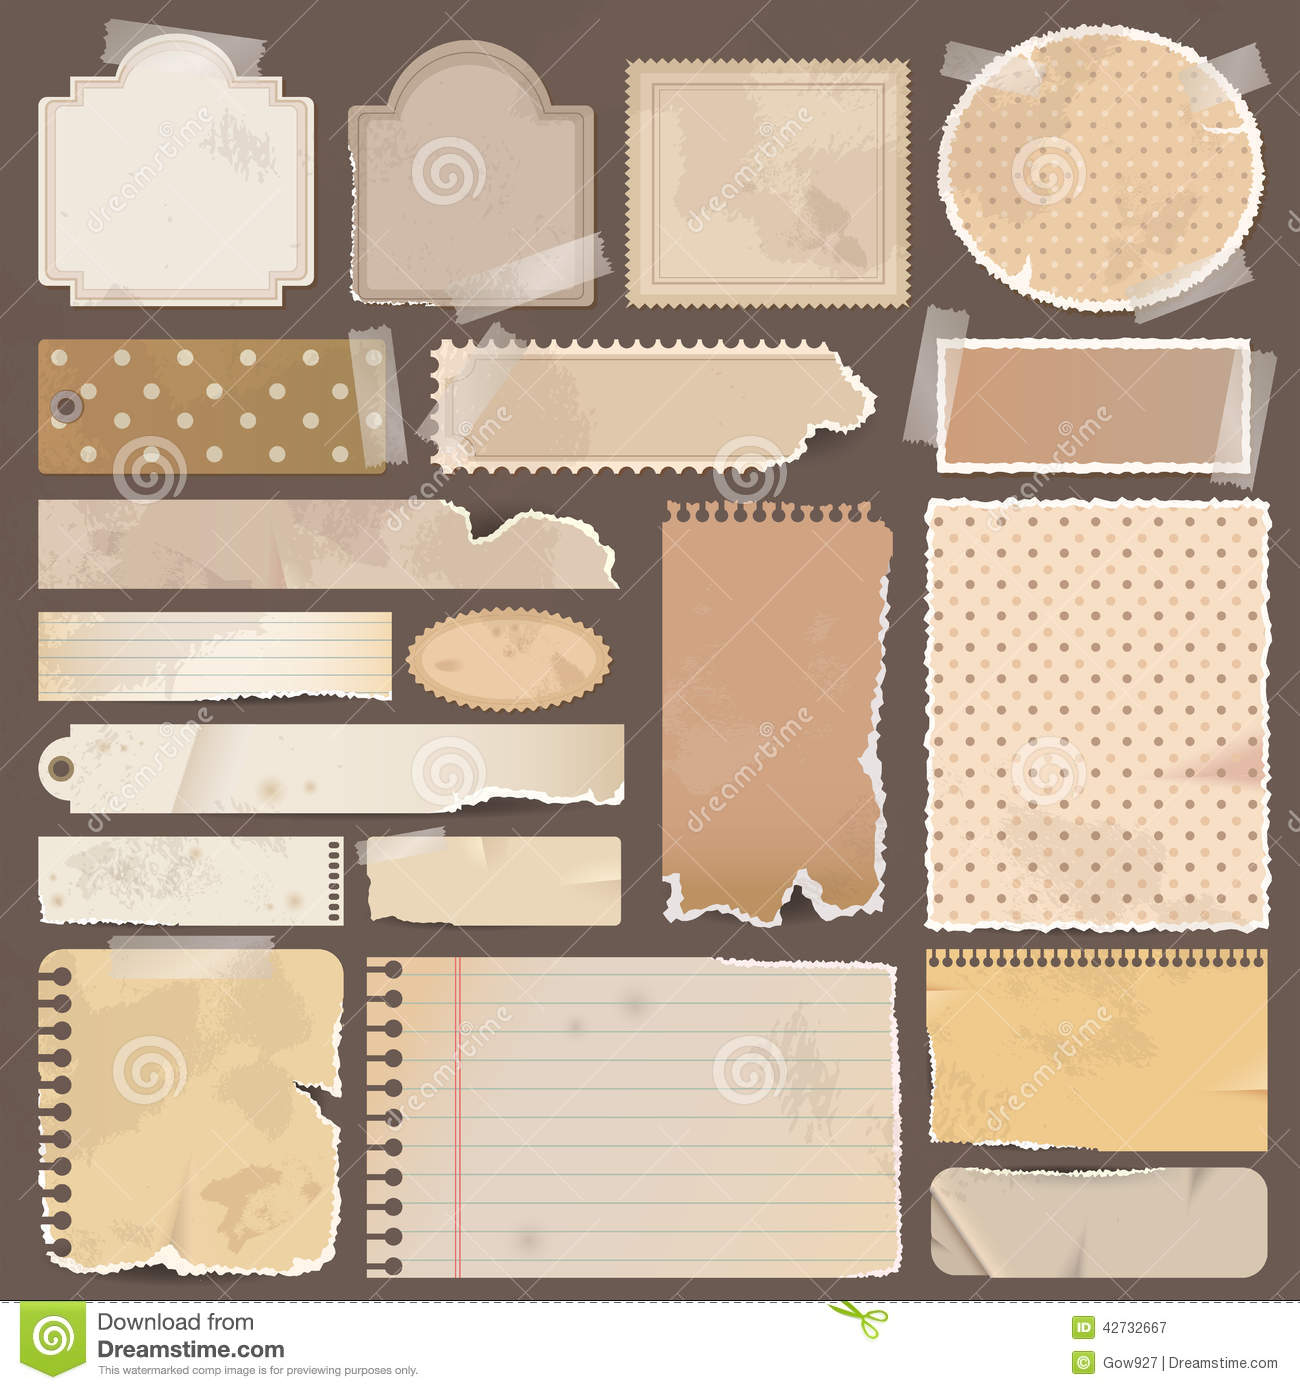 Various old remnant pieces of paper scrapbook an royalty free stock photography